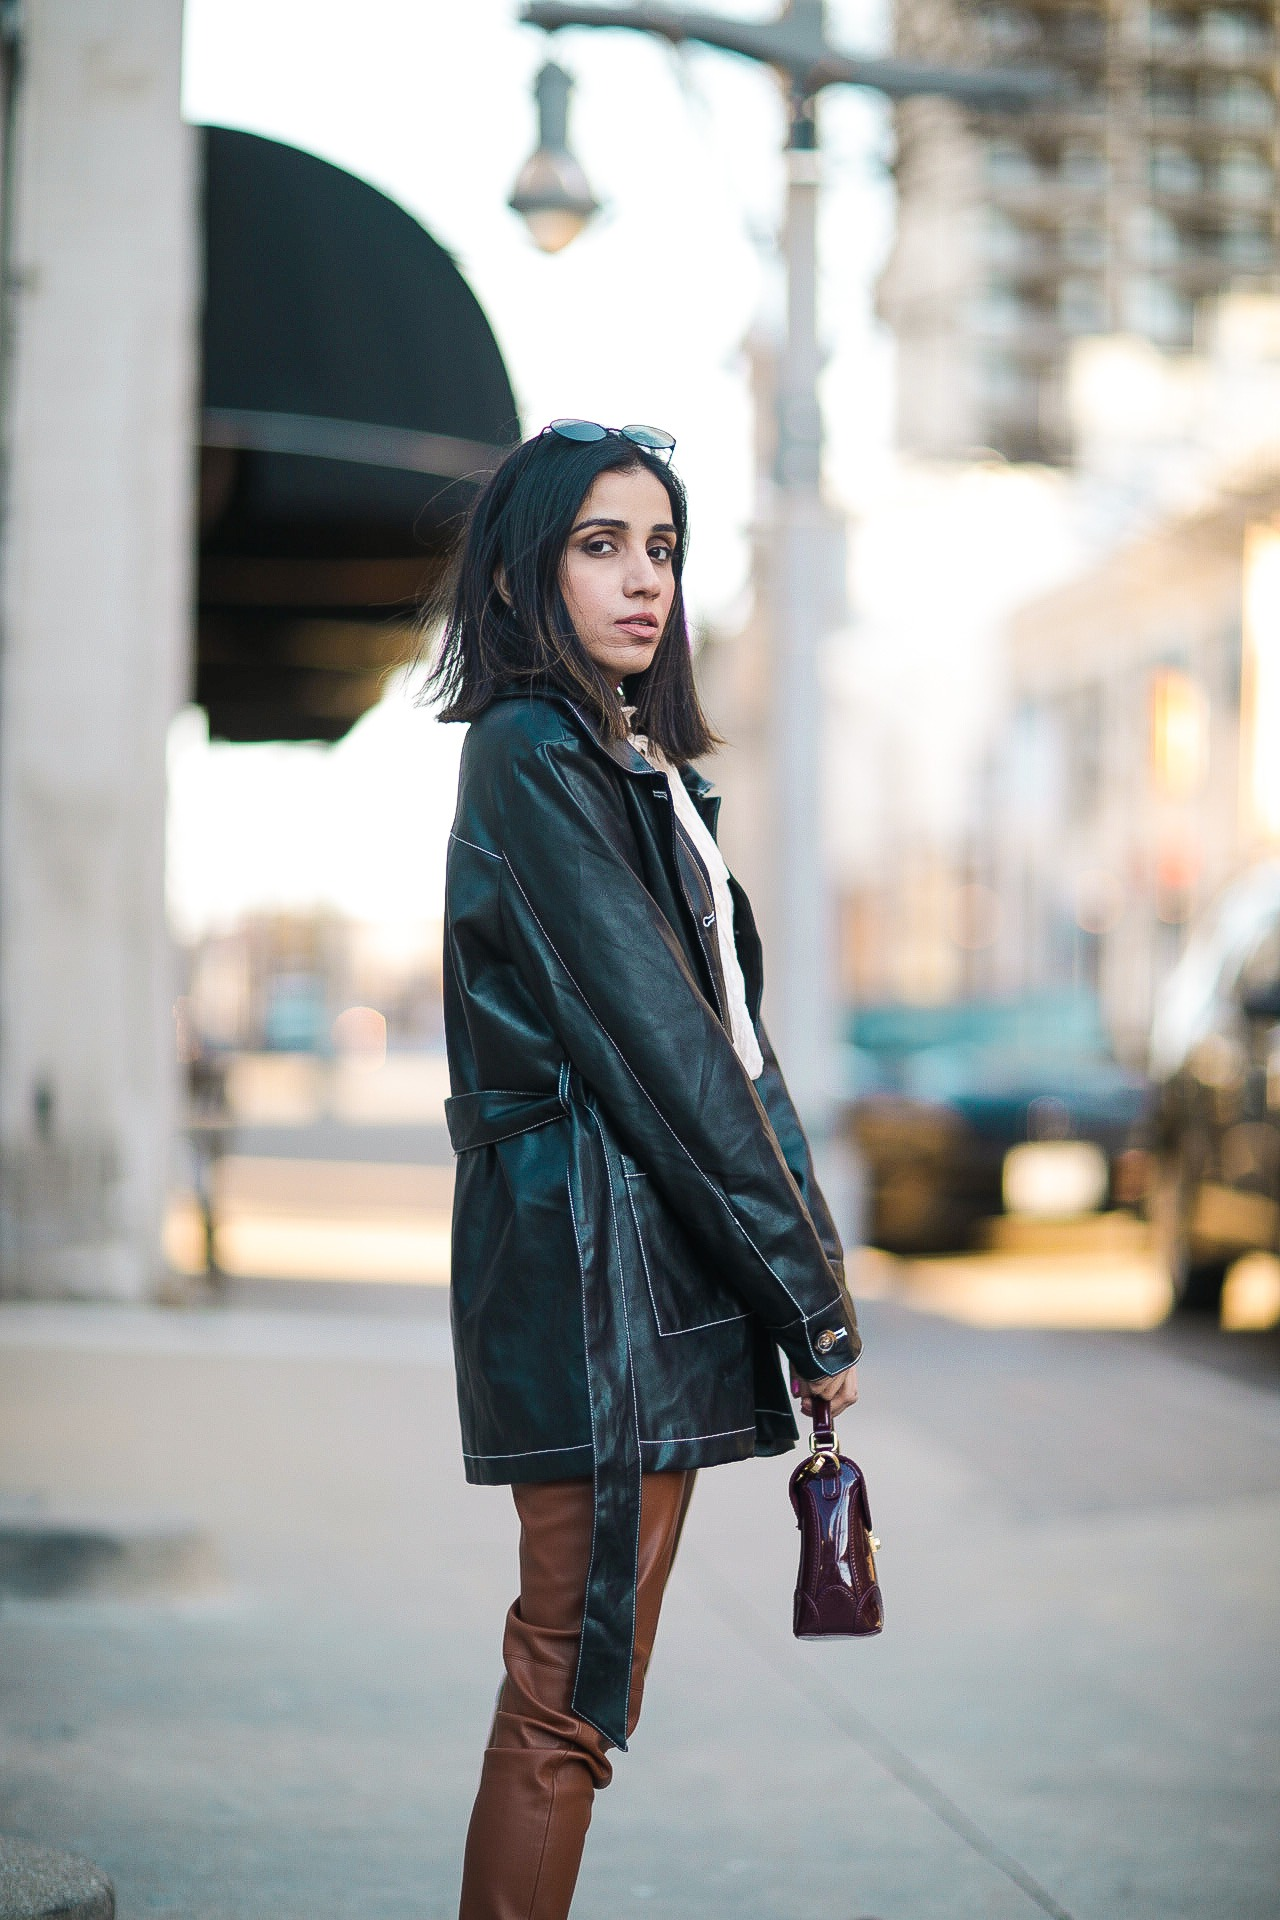 2020-Fall-Trends-I-am-Excited-About-Leather-fashion-FAiza-Inam-2020-Fall-sincerely-humble-1